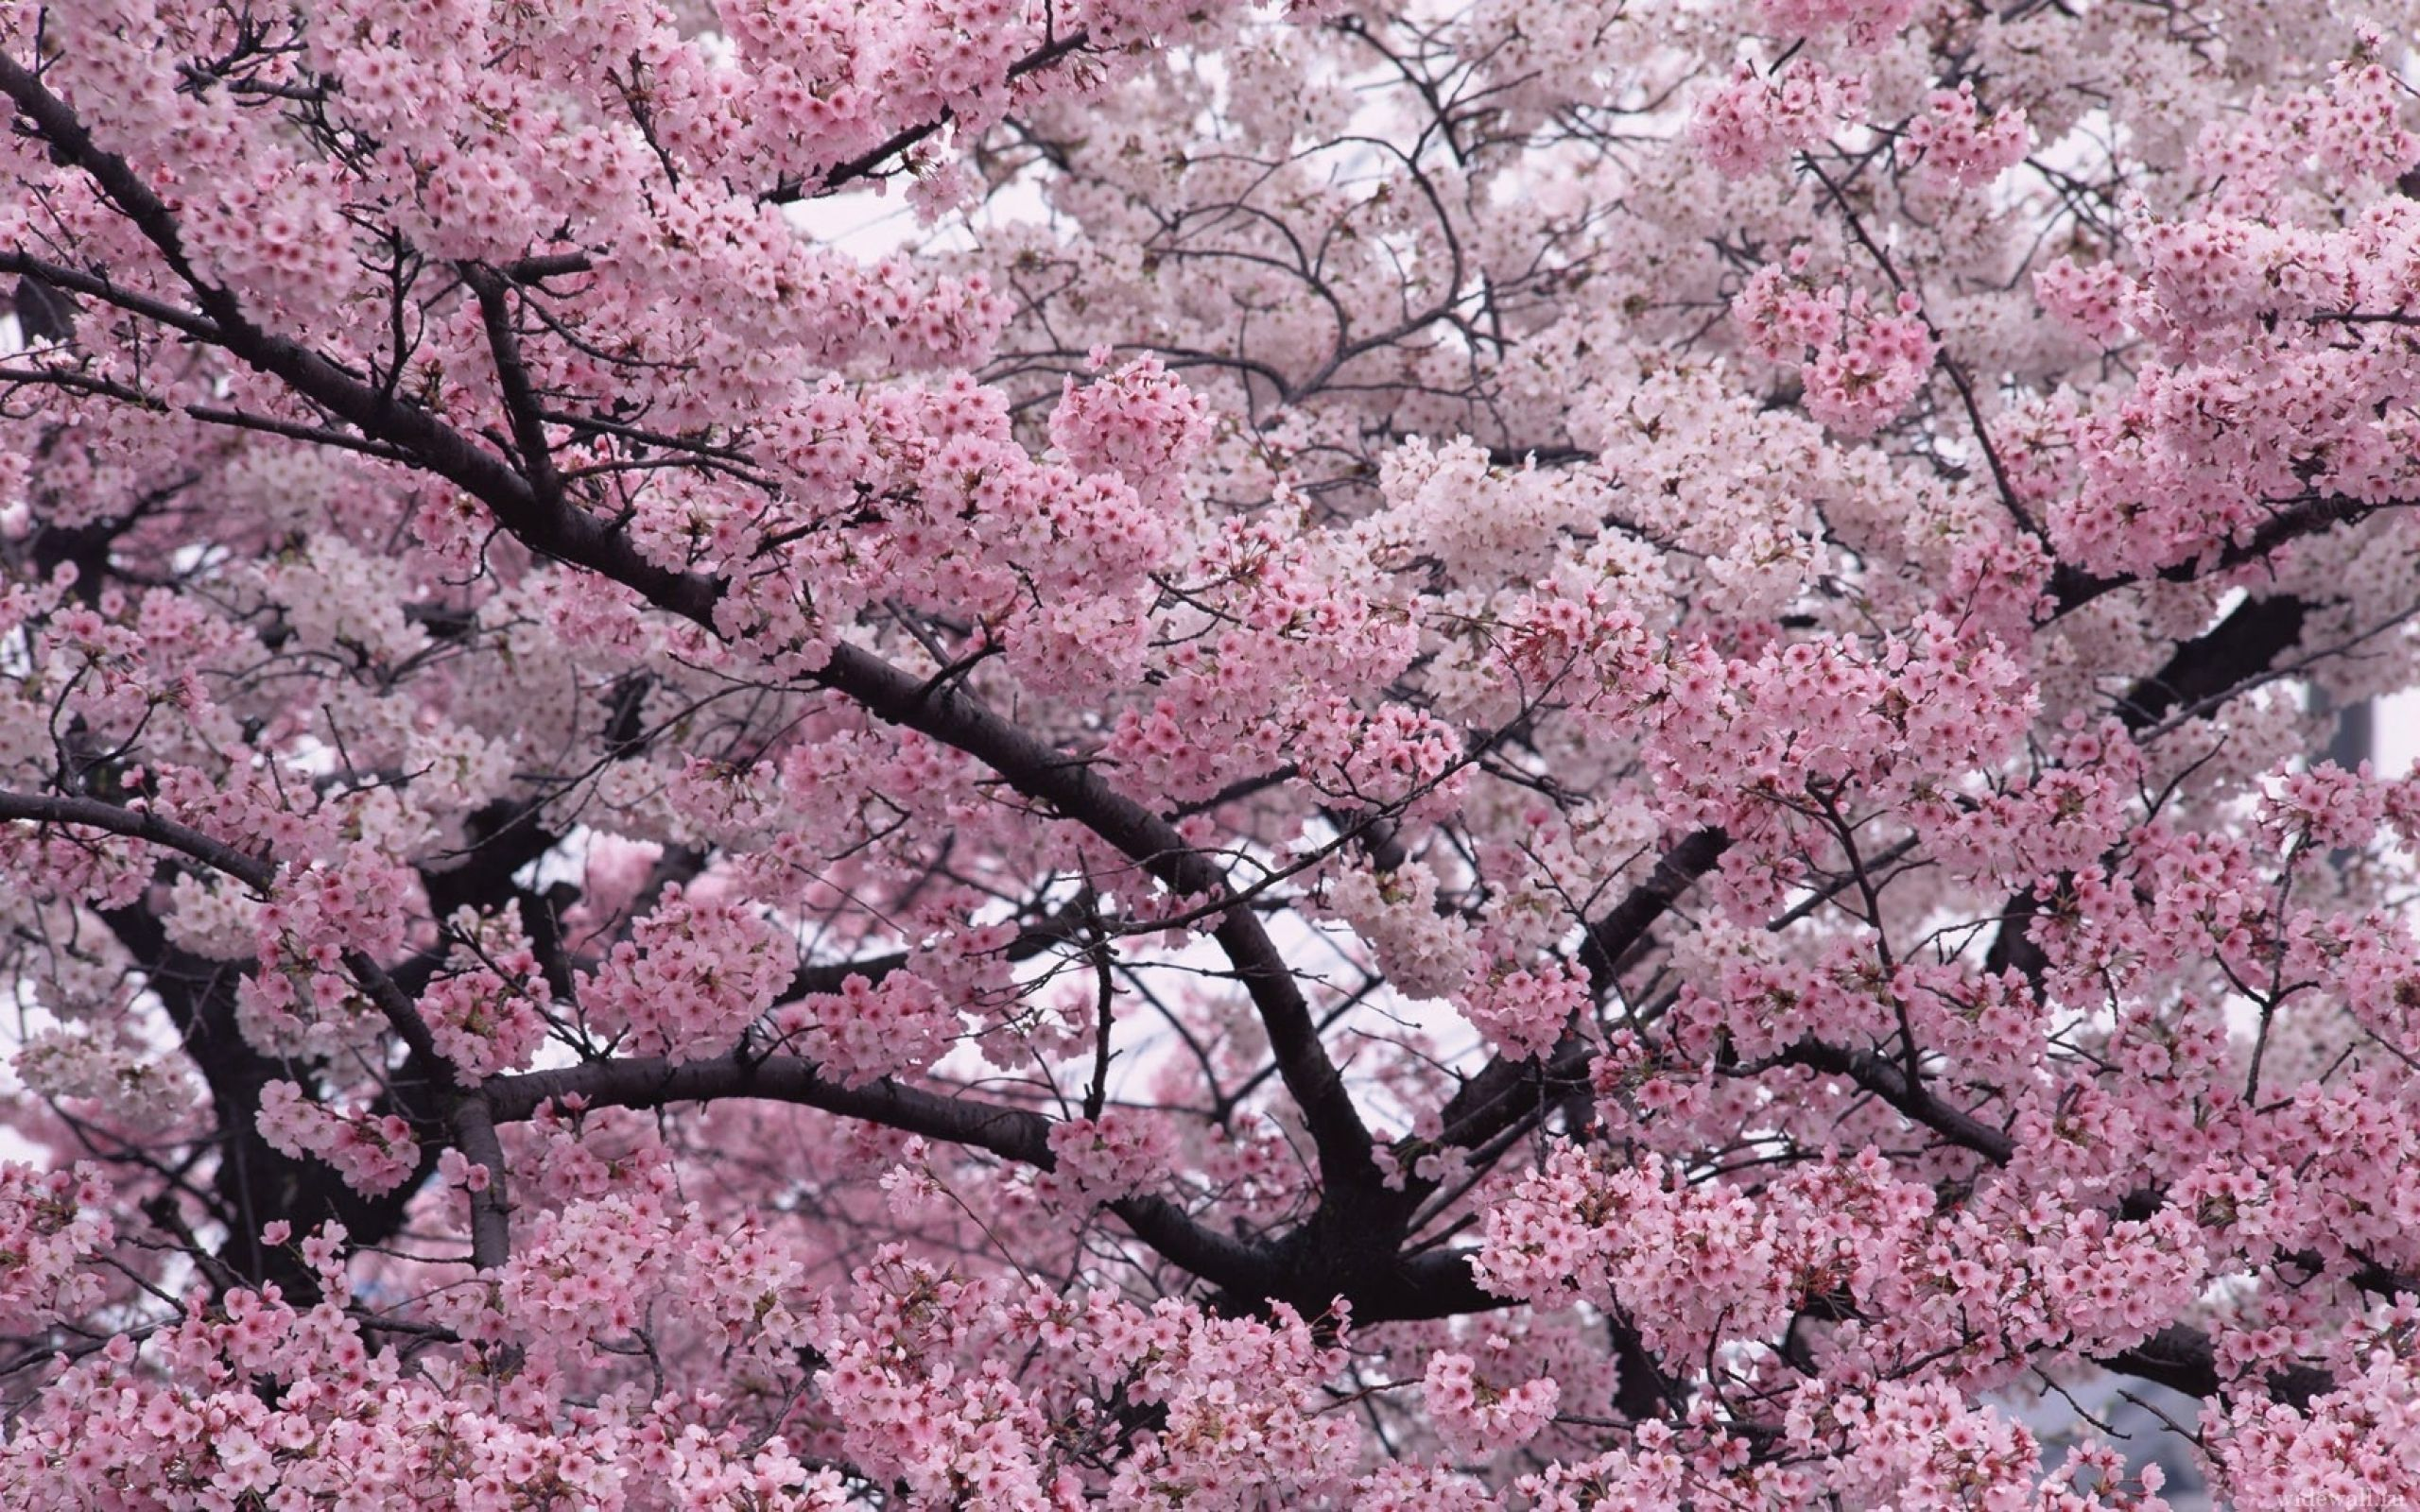 Beautiful Spring Cherry Blossoms Trees Cherry Blossom Tree Flower Landscape Blossom Trees